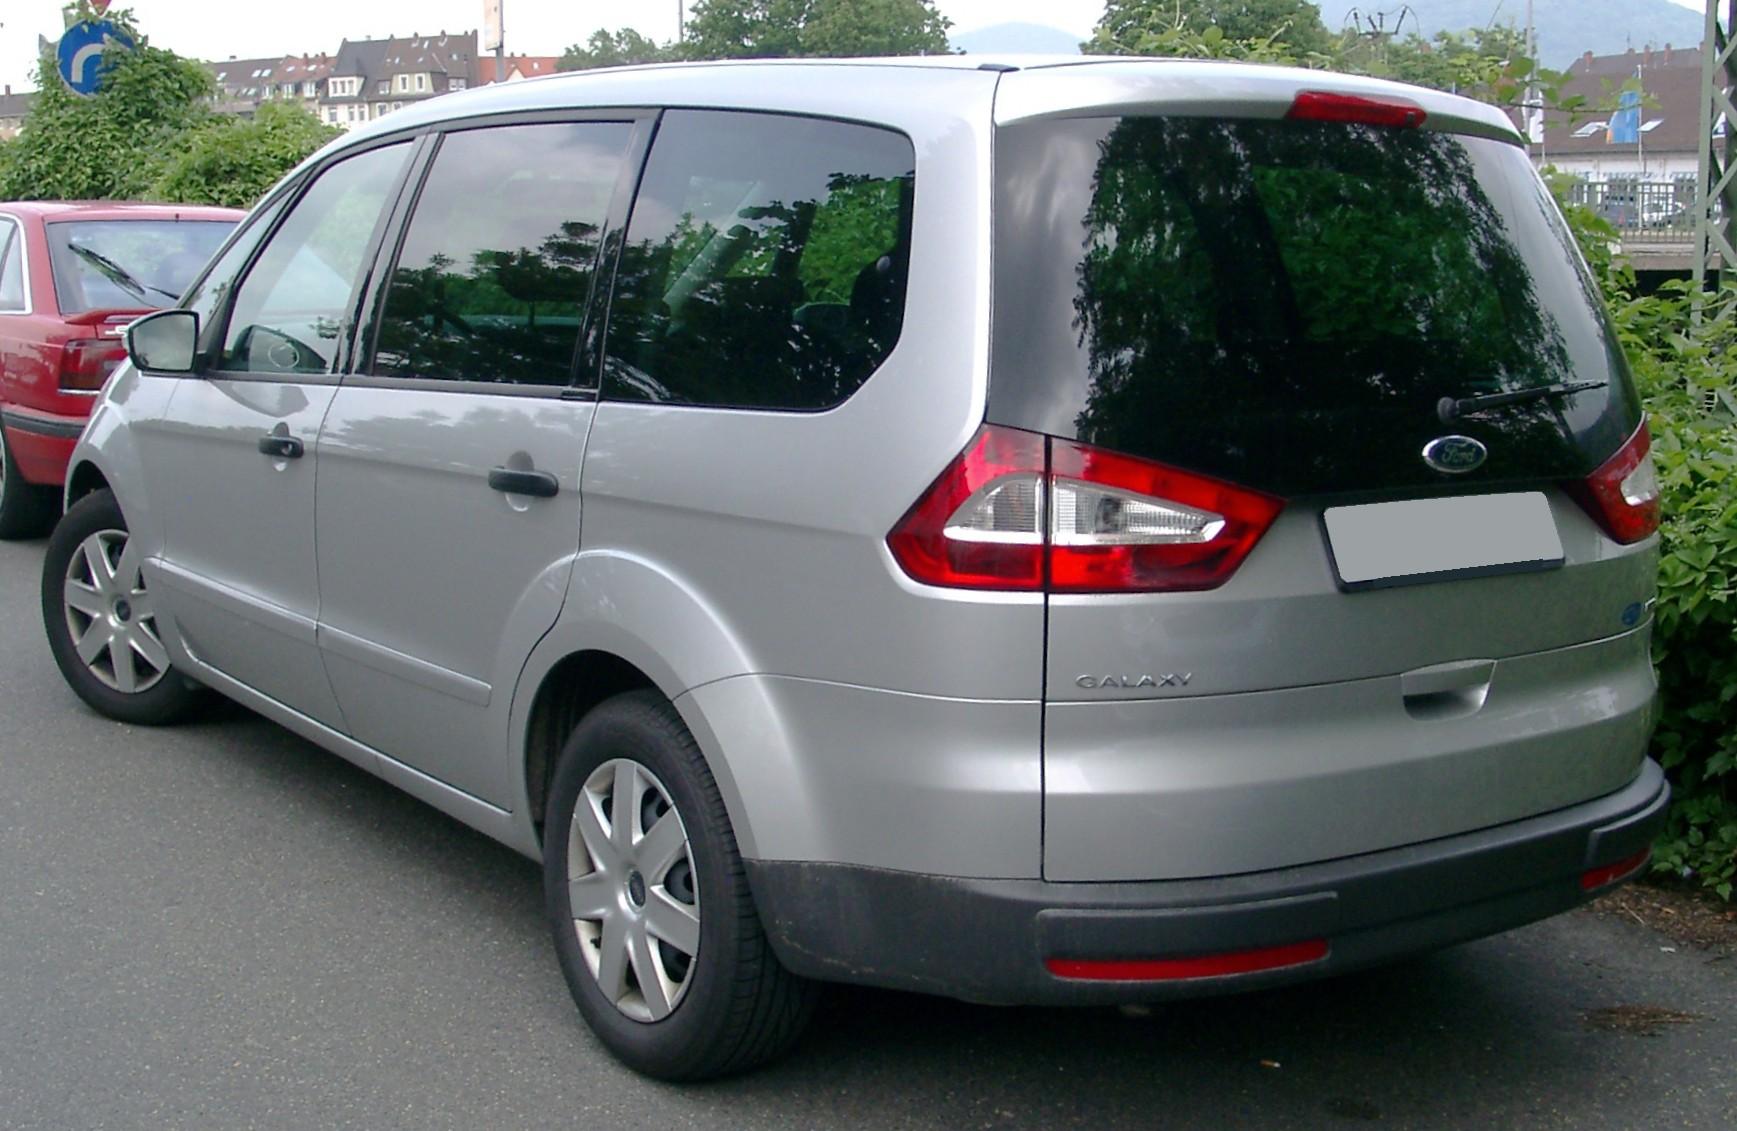 Ford Galaxy Keeping Families Together #3